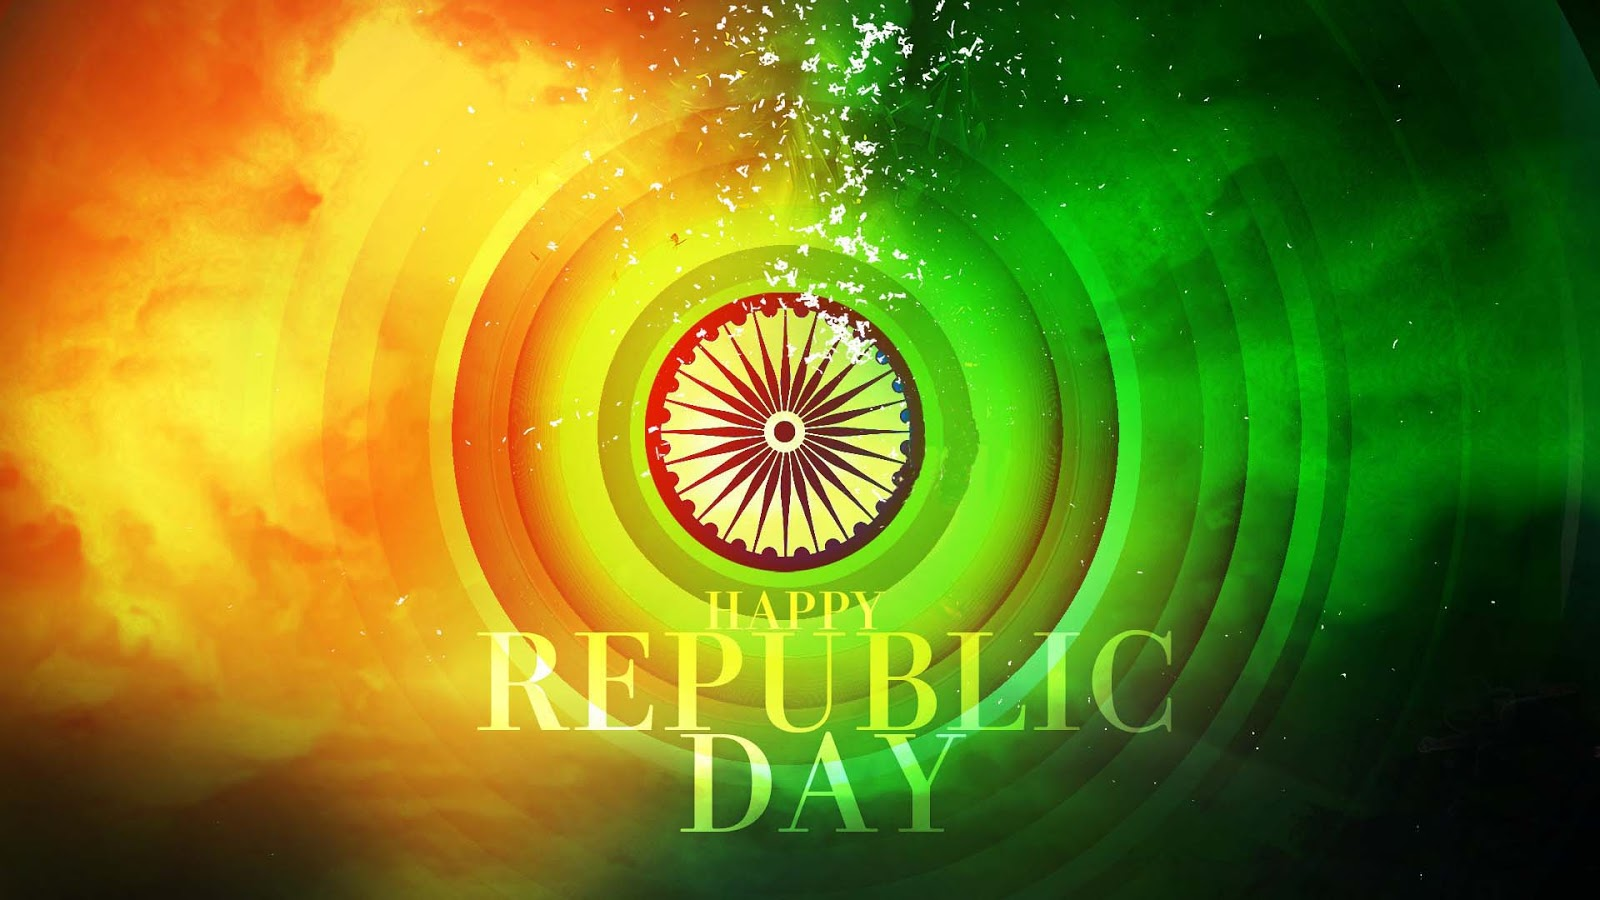 26th happy republic day 2017 quotes messages in hindi english 26th happy republic day 2017 quotes messages in hindi english republic day